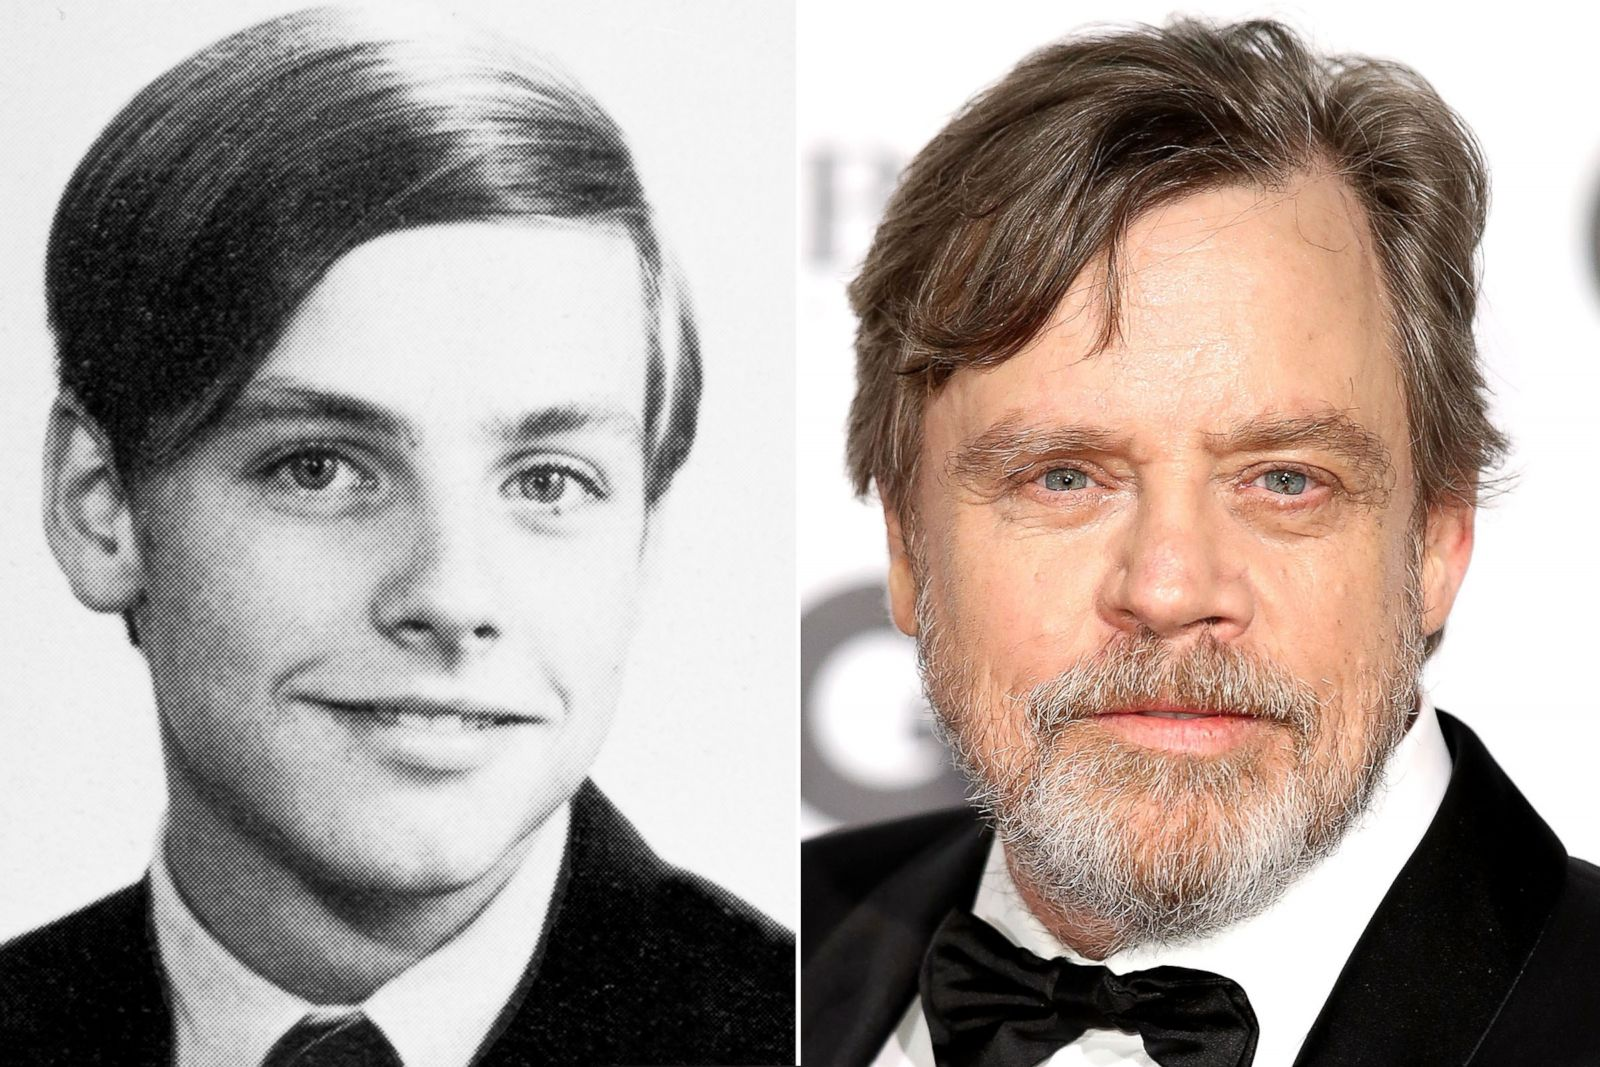 ' ' from the web at 'https://s.abcnews.com/images/Entertainment/mark-hamill-ht-gty-ml-170925_3x2_1600.jpg'